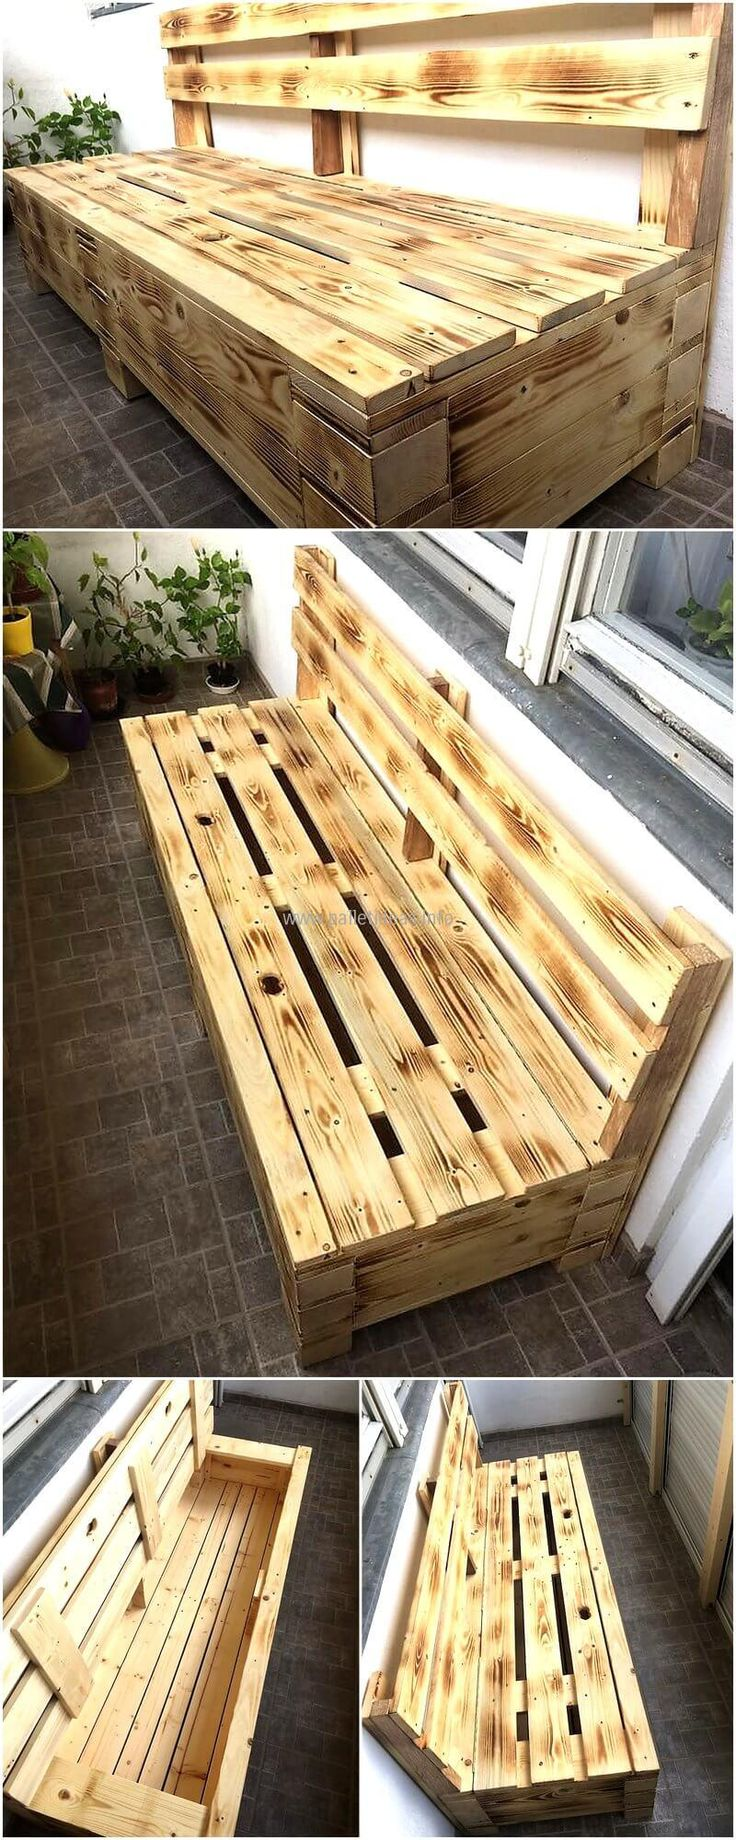 Best 25 Wooden Pallet Furniture Ideas Only On Pinterest Wooden Pallet Projects Crafts Out Of